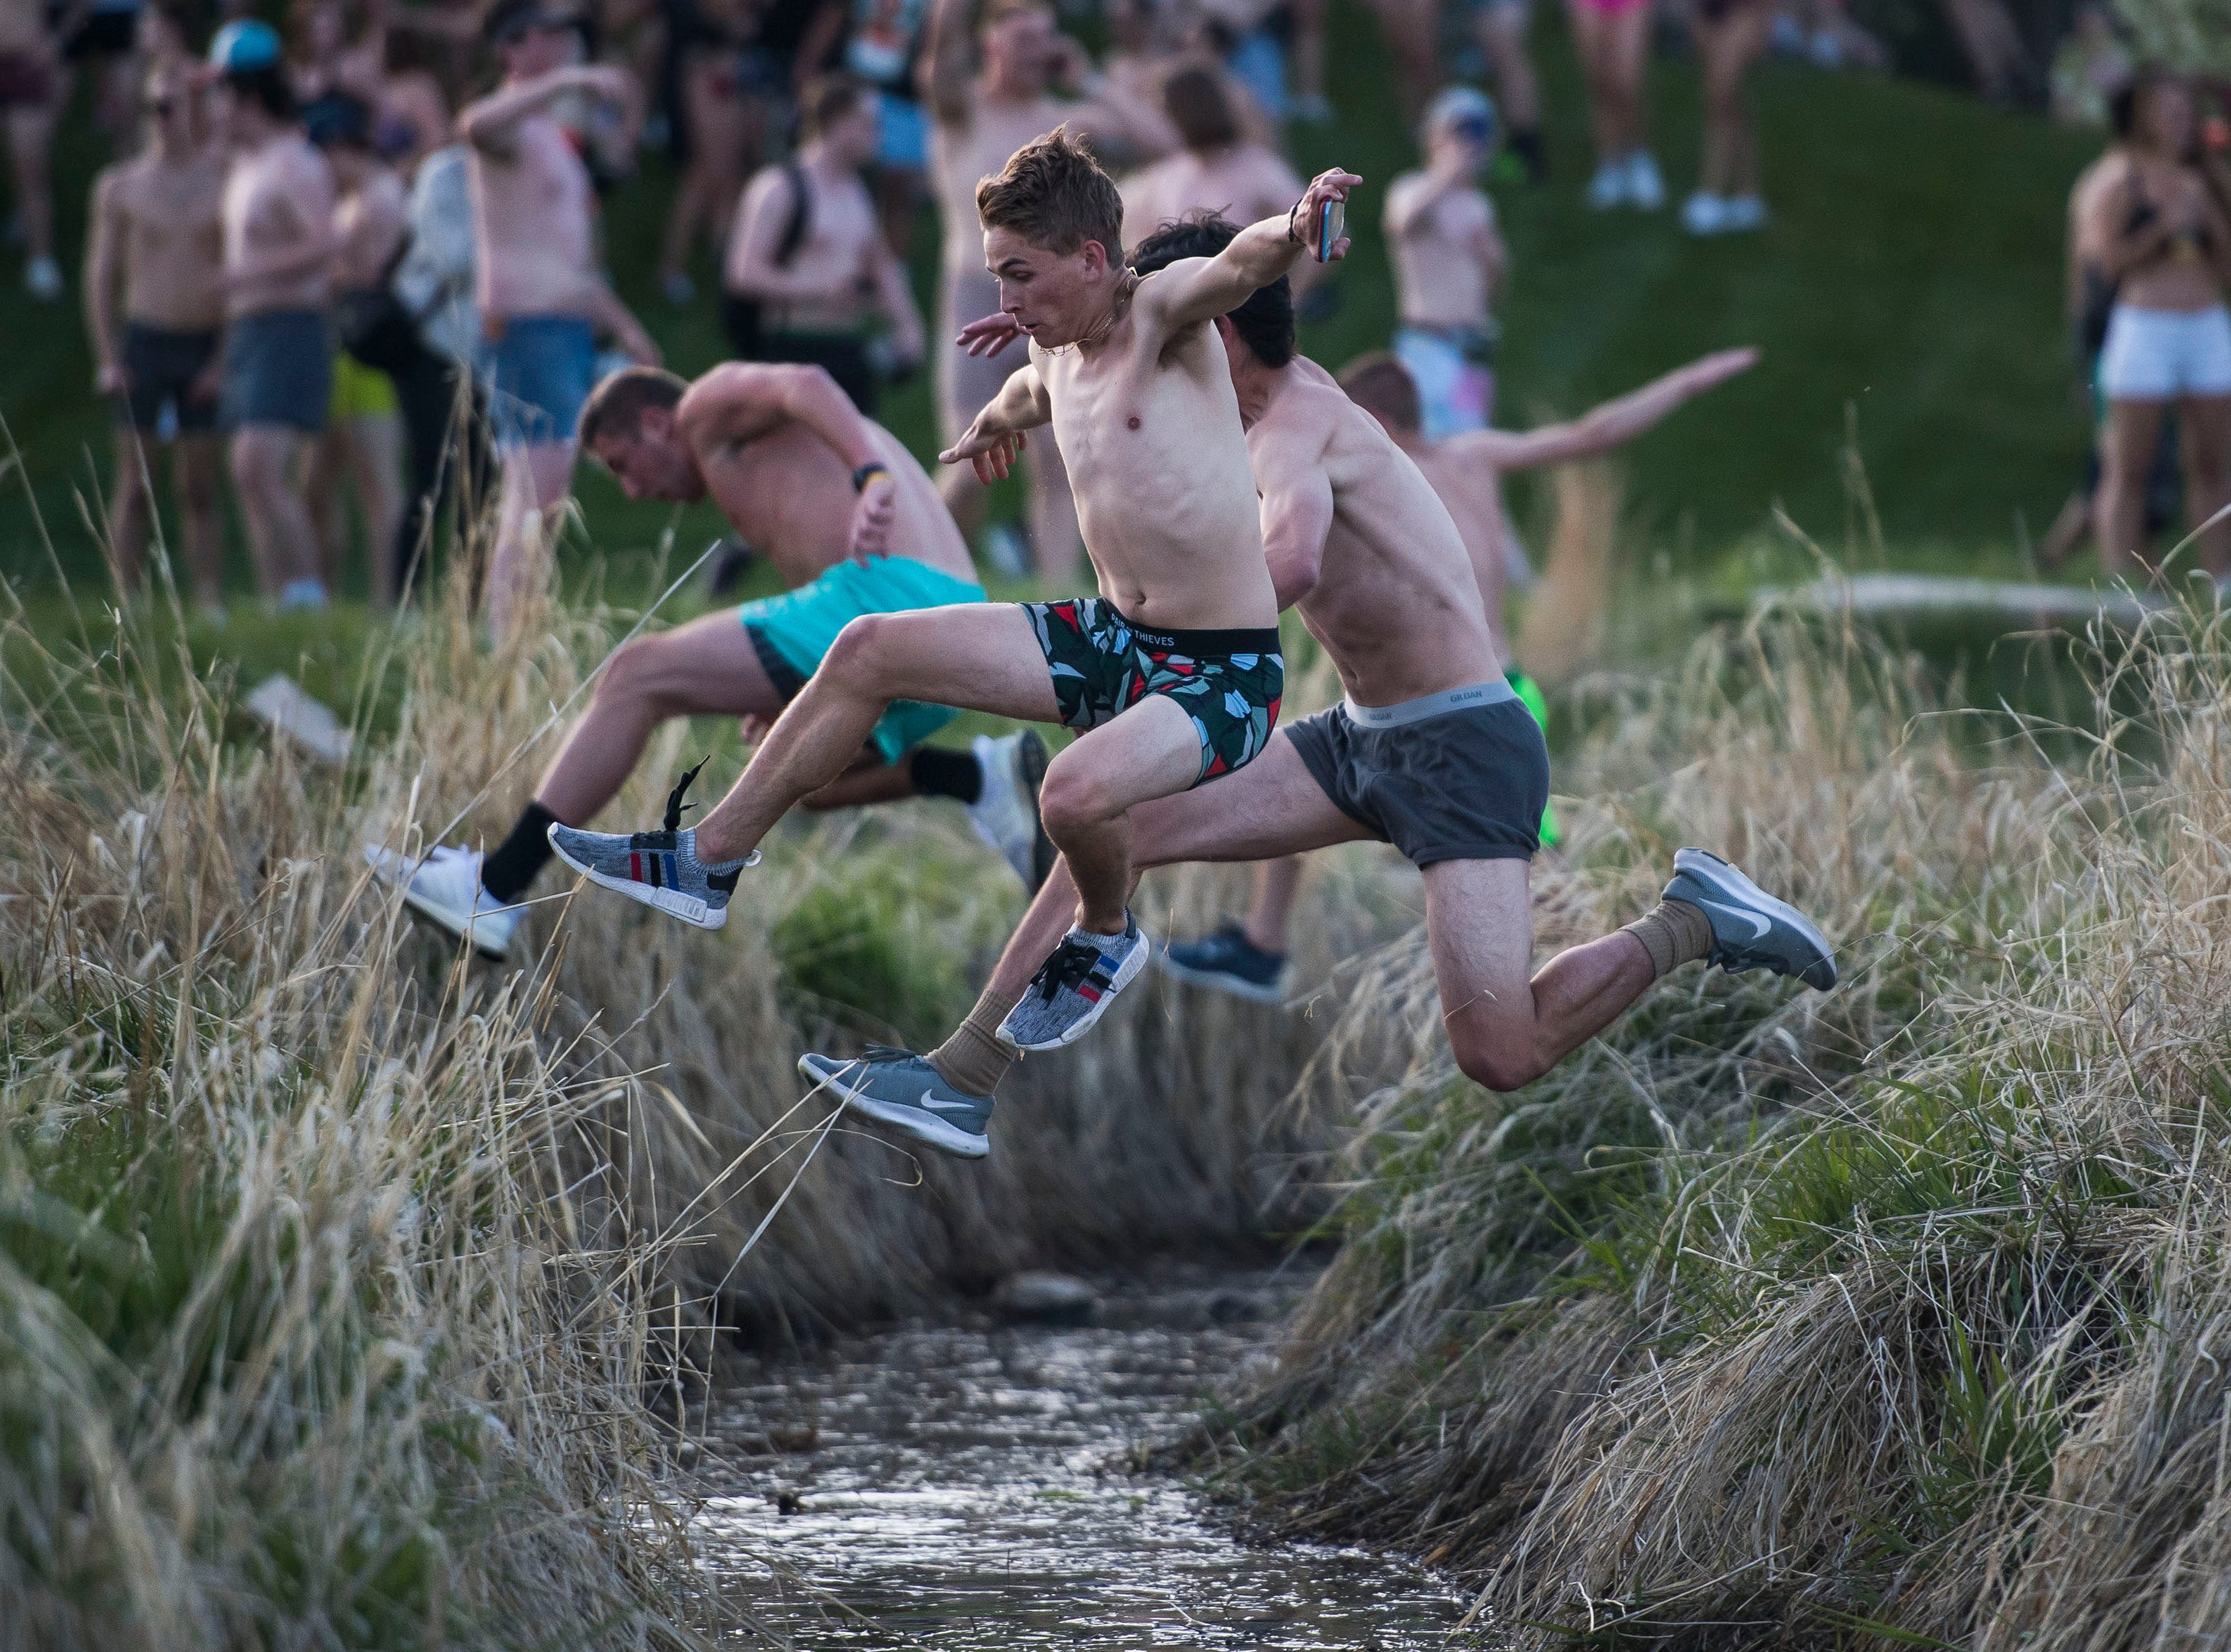 """Participants leap over the ditch near the recreation center during the """"Undie Run"""" on Friday, May 10, 2019, on the Colorado State University campus in Fort Collins, Colo."""